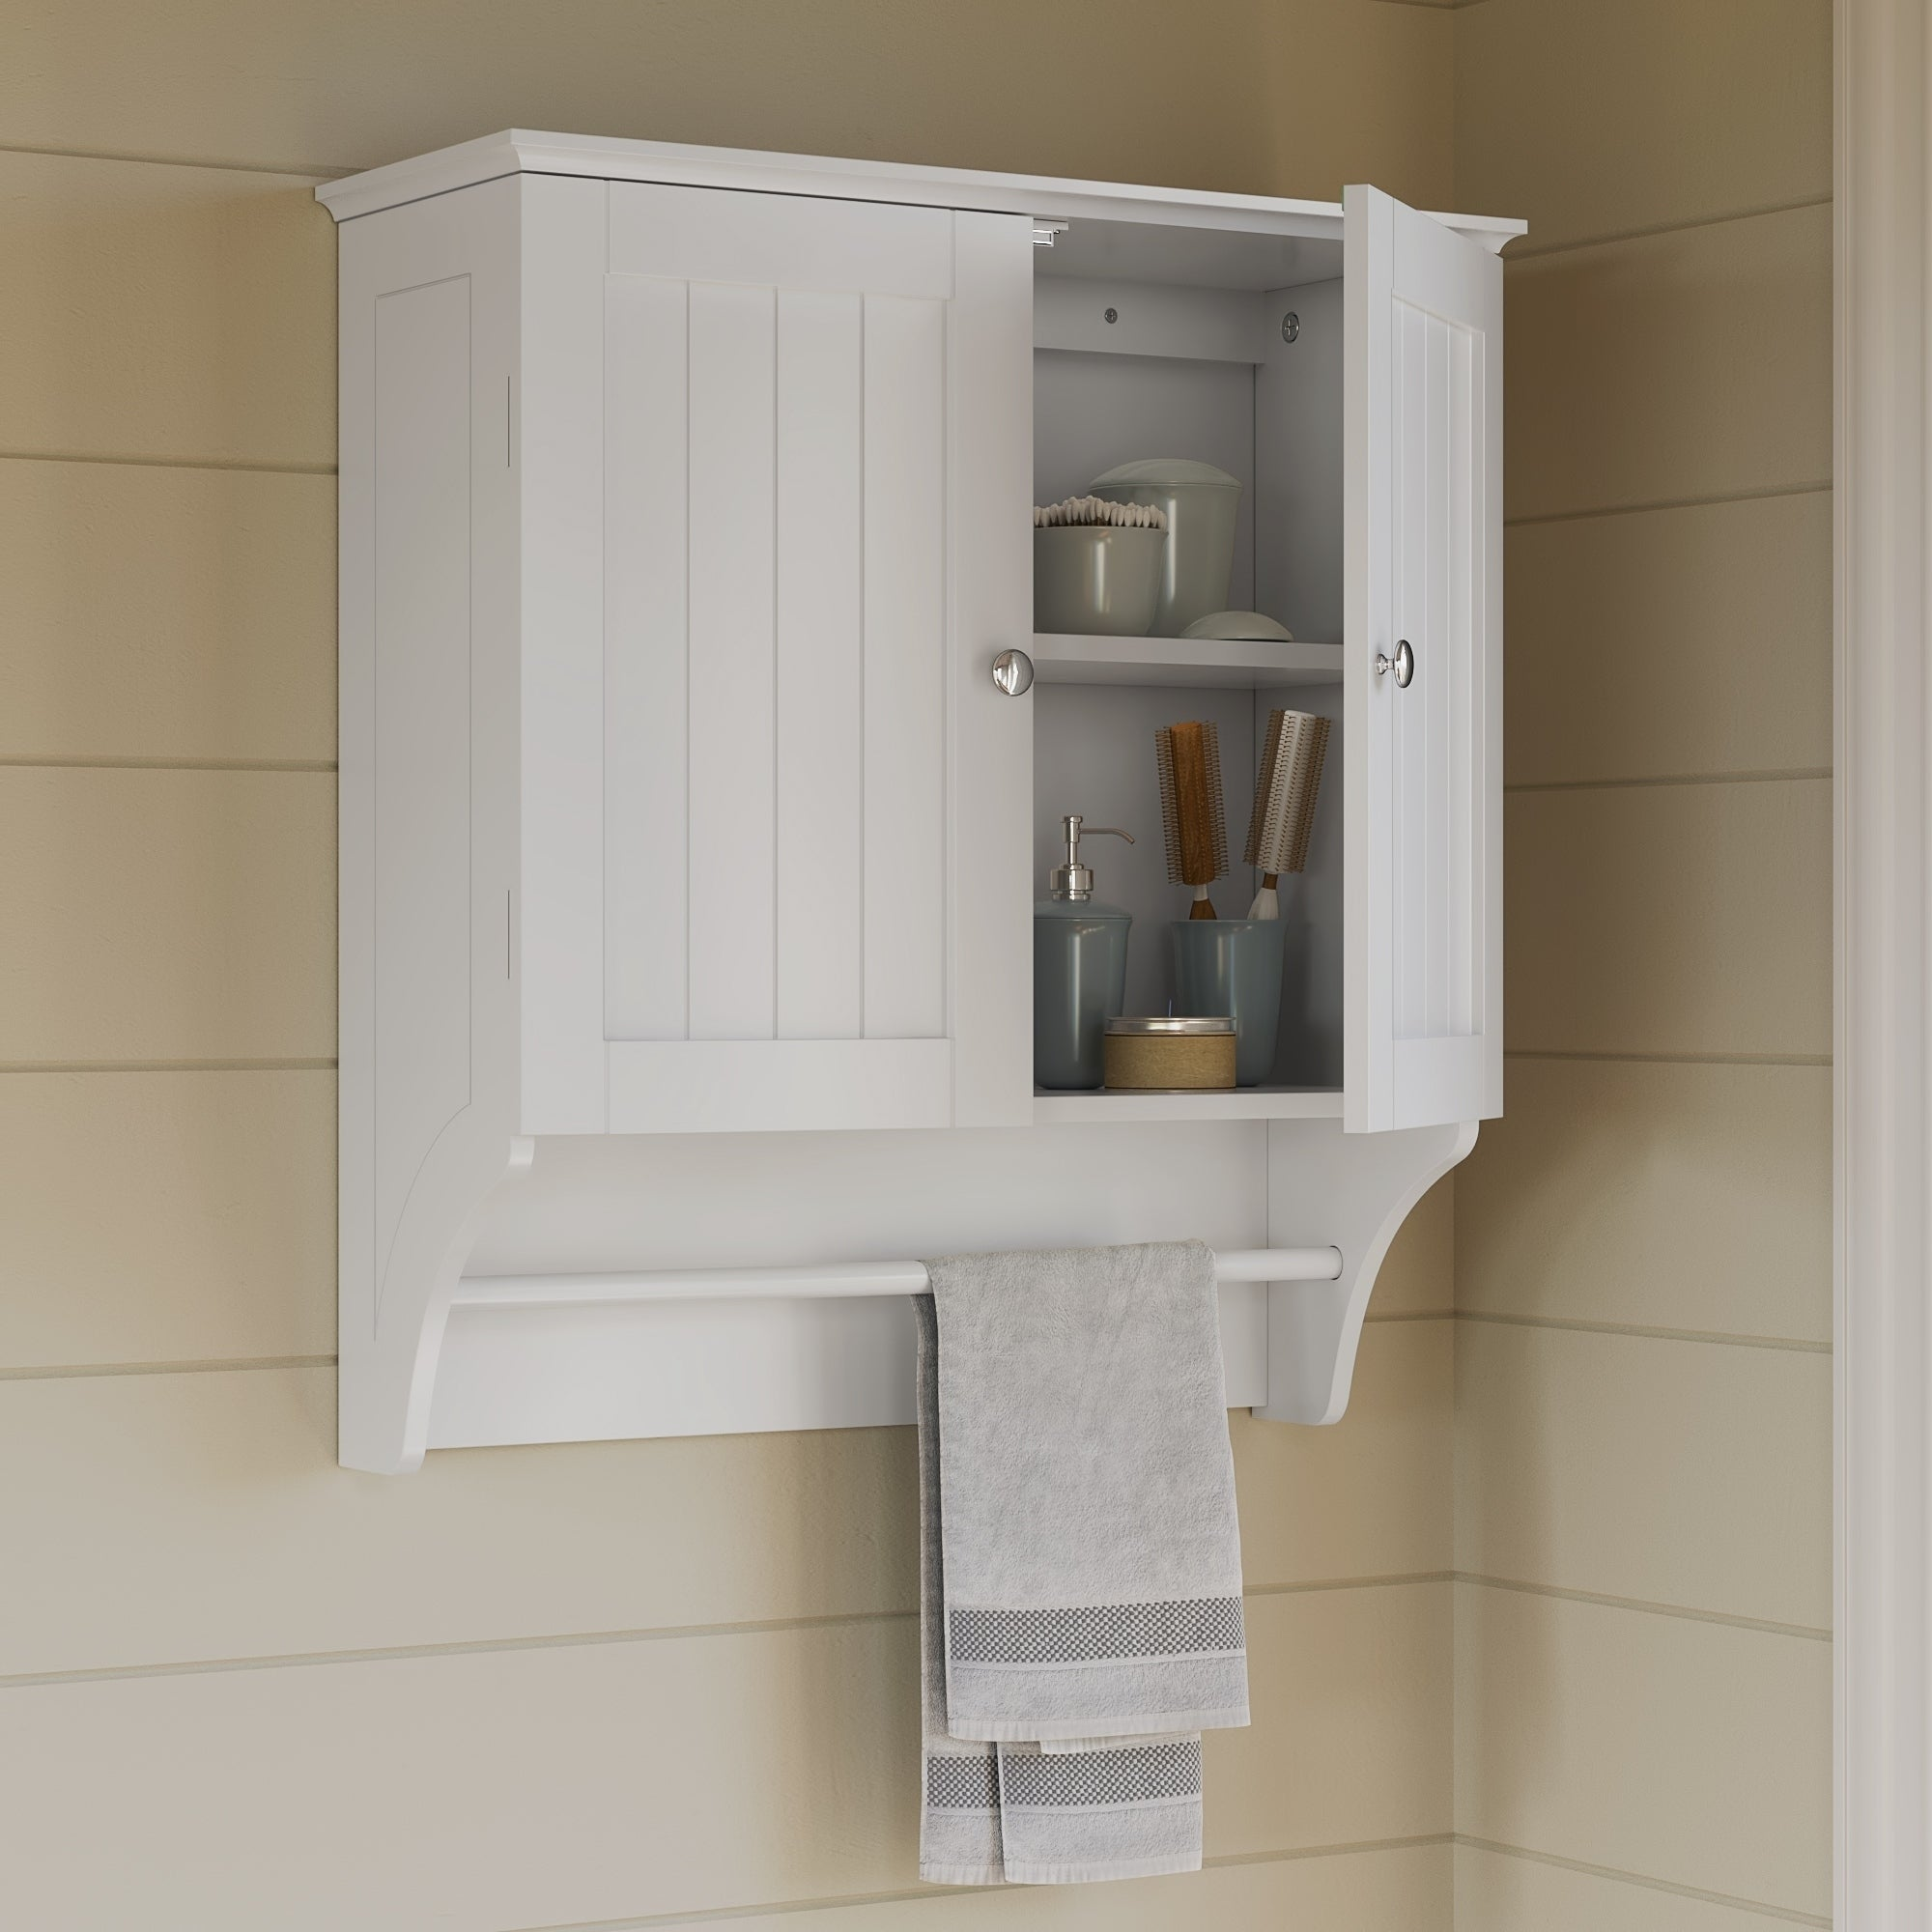 Buy Wall Cabinet Bathroom Cabinets Storage Online At Overstock